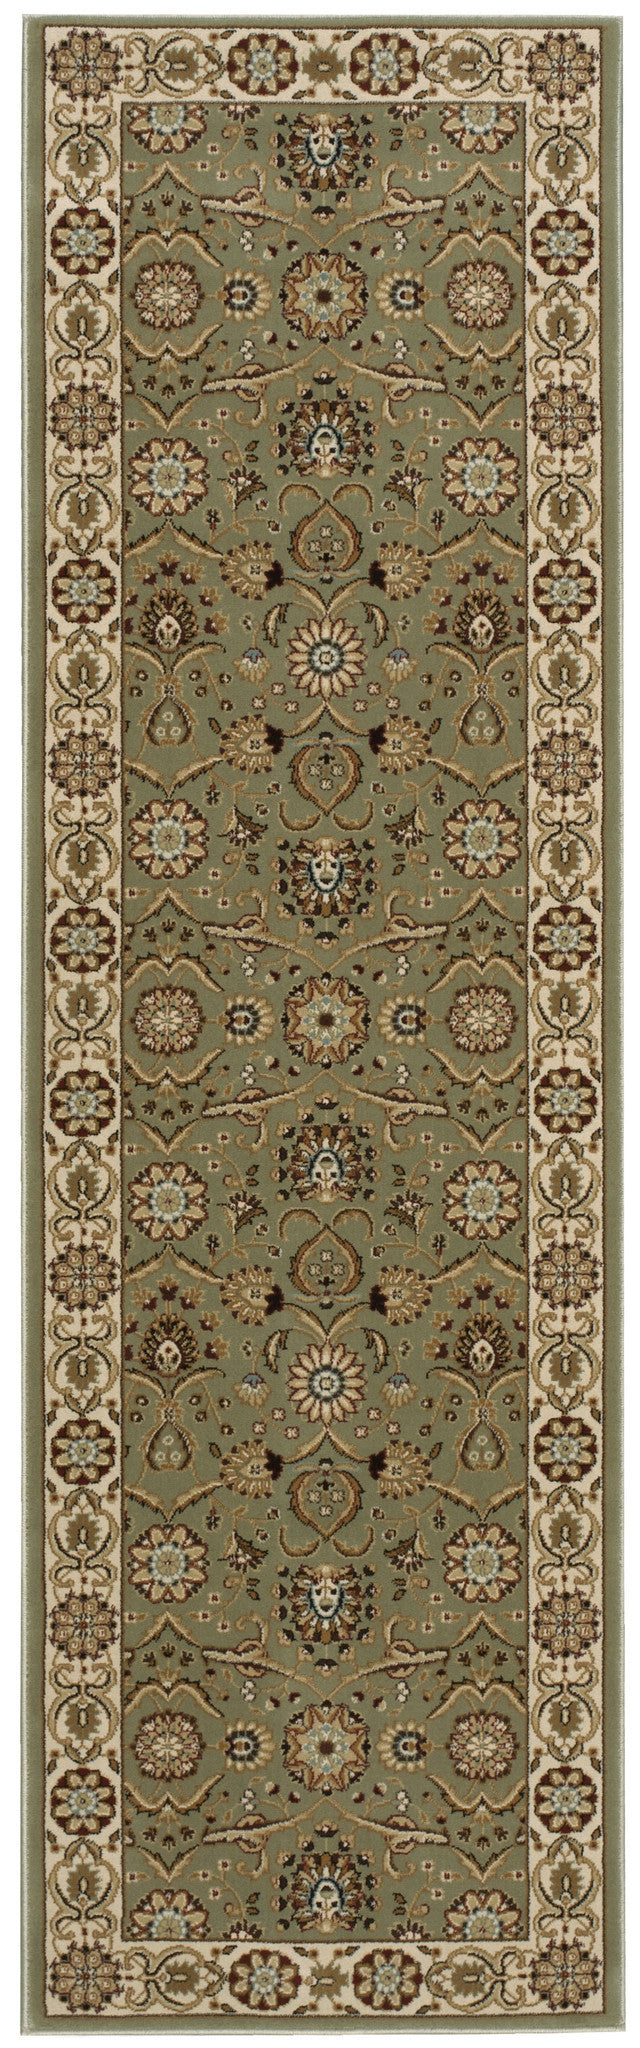 Nourison Persian Crown Green Area Rug PC001 GREEN